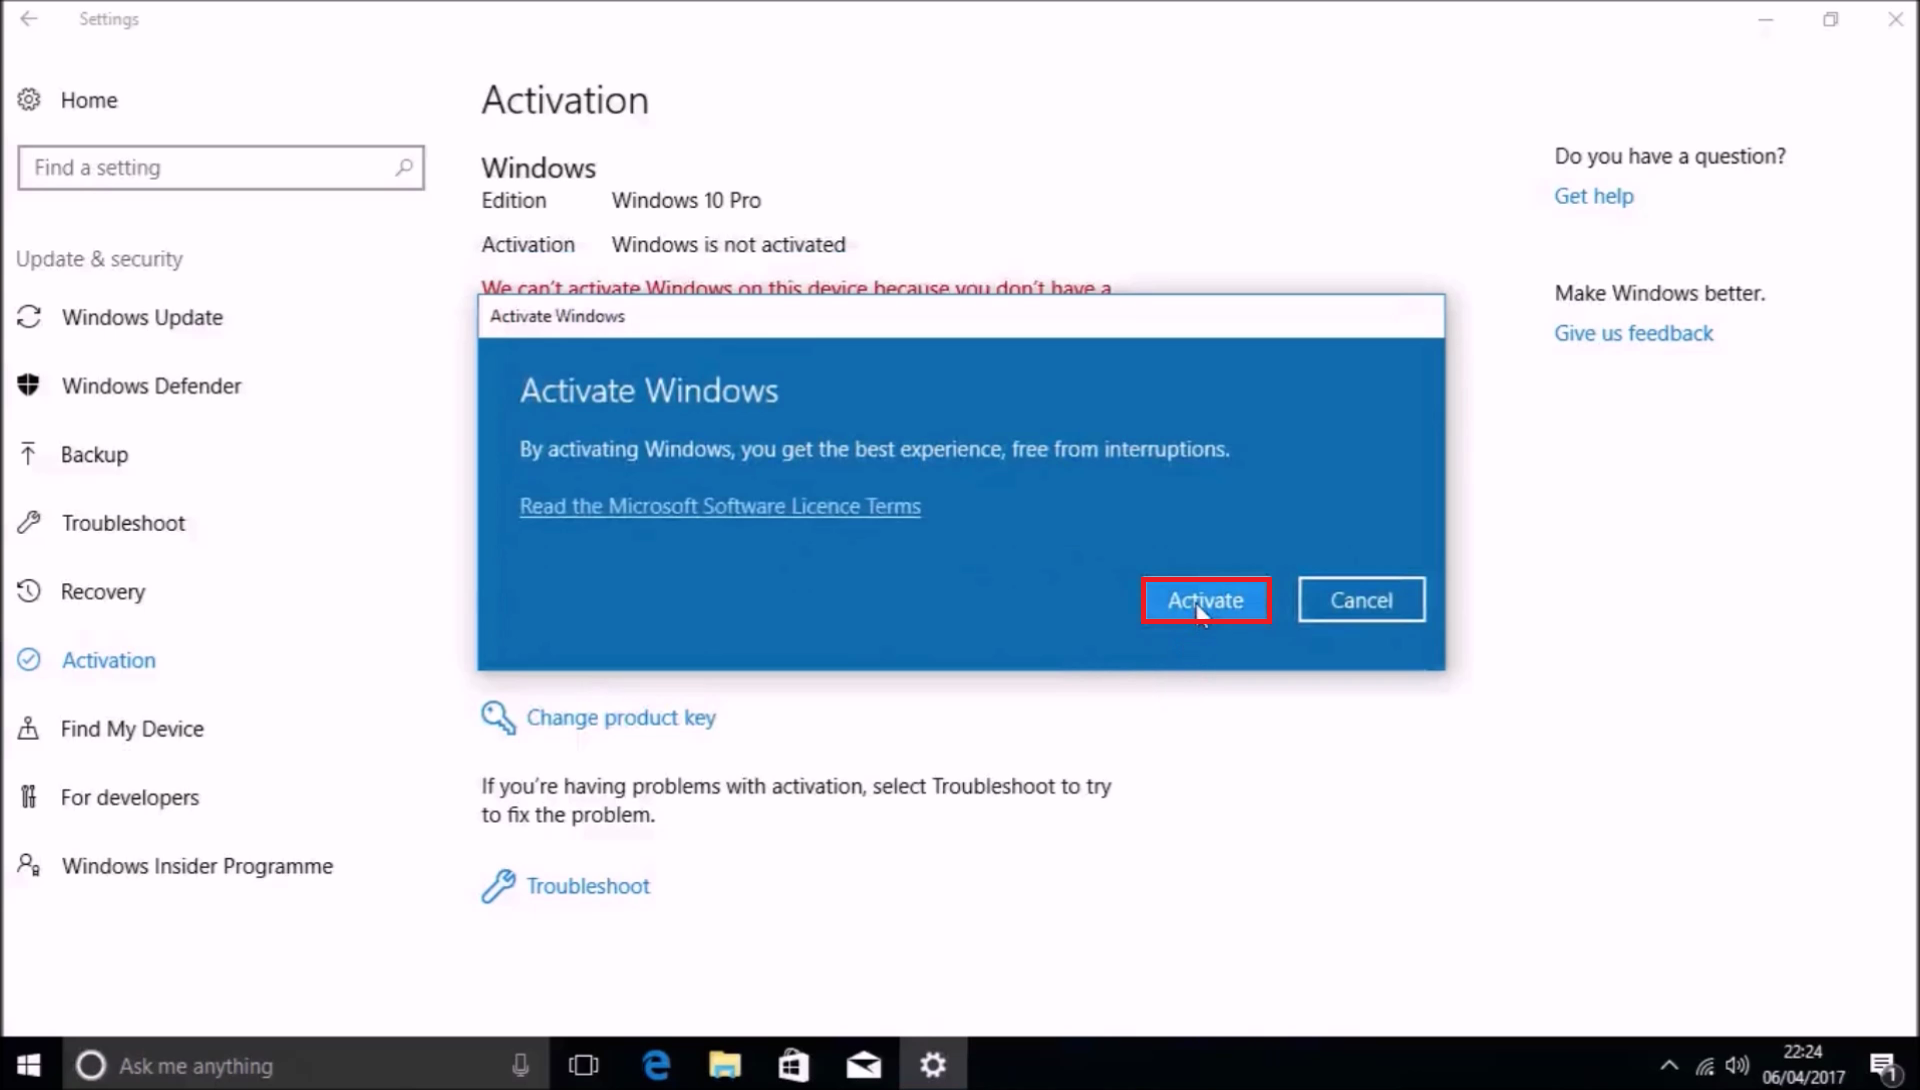 Windows 7 oem keys and windows 8x oem keys still activate windows so i have confirmed that the product activation server still accepts windows 7 oem keys for the initial activation of a windows 10 installation and not ccuart Gallery